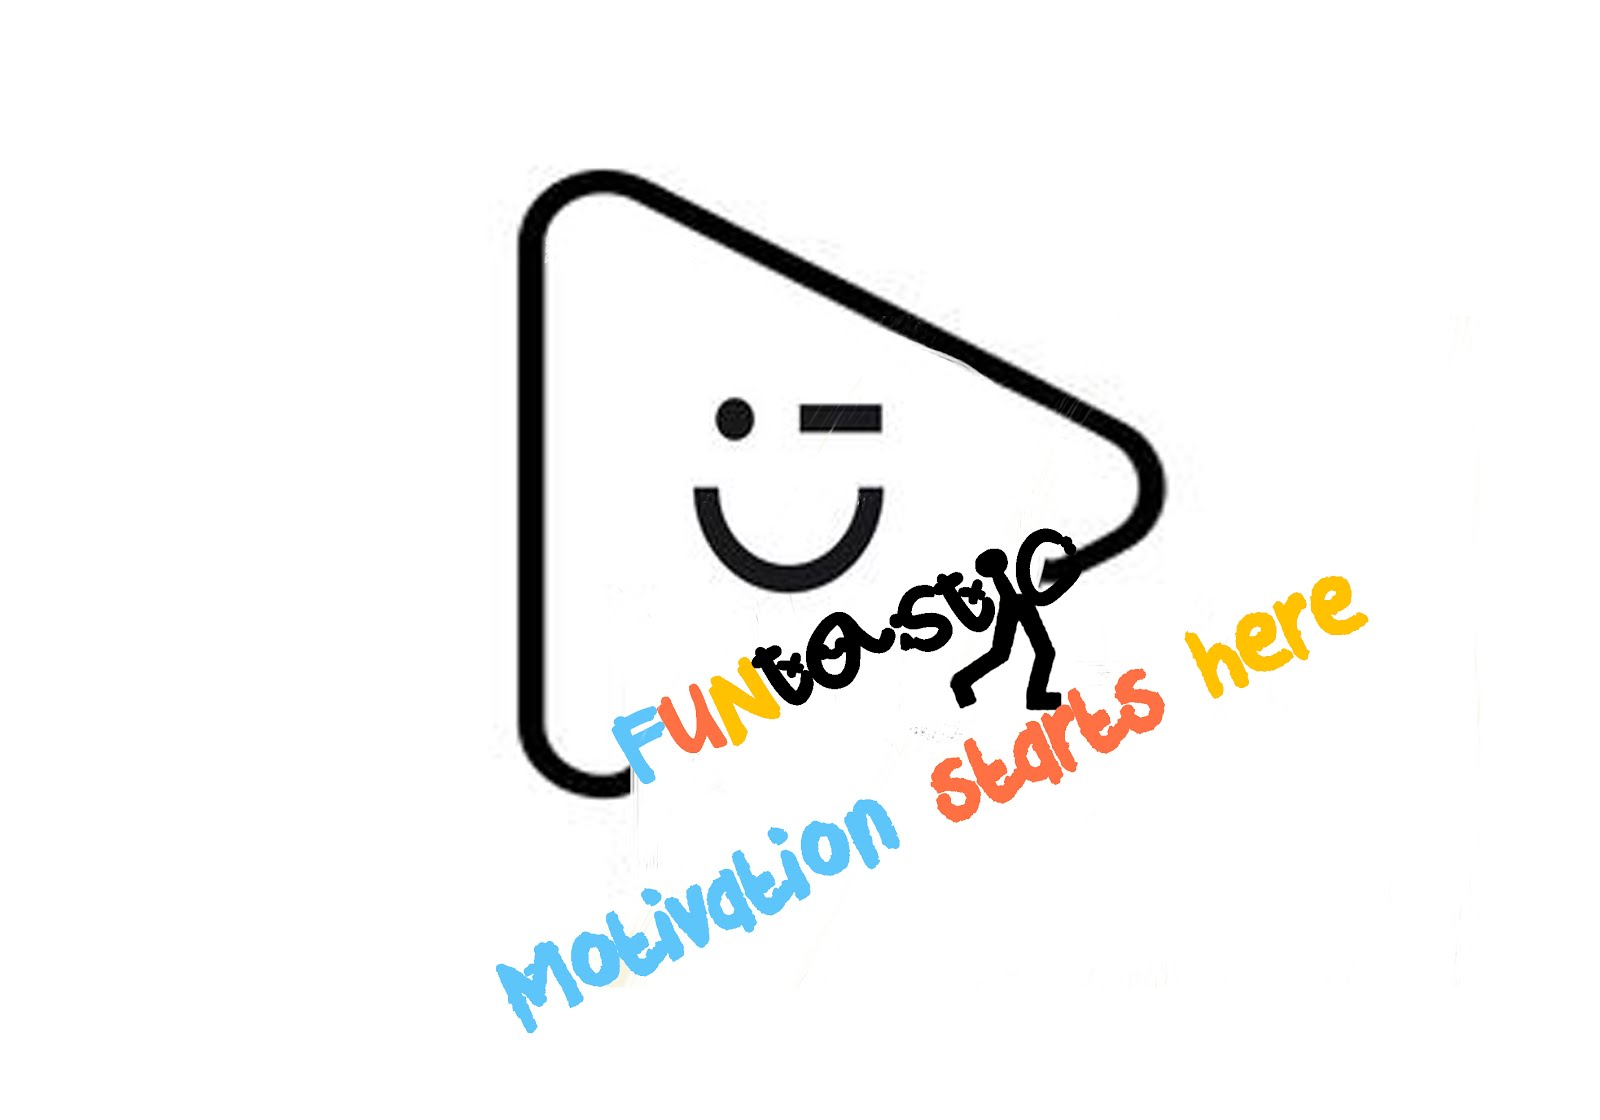 FUNTASTIC: MOTIVATION STARTS HERE!